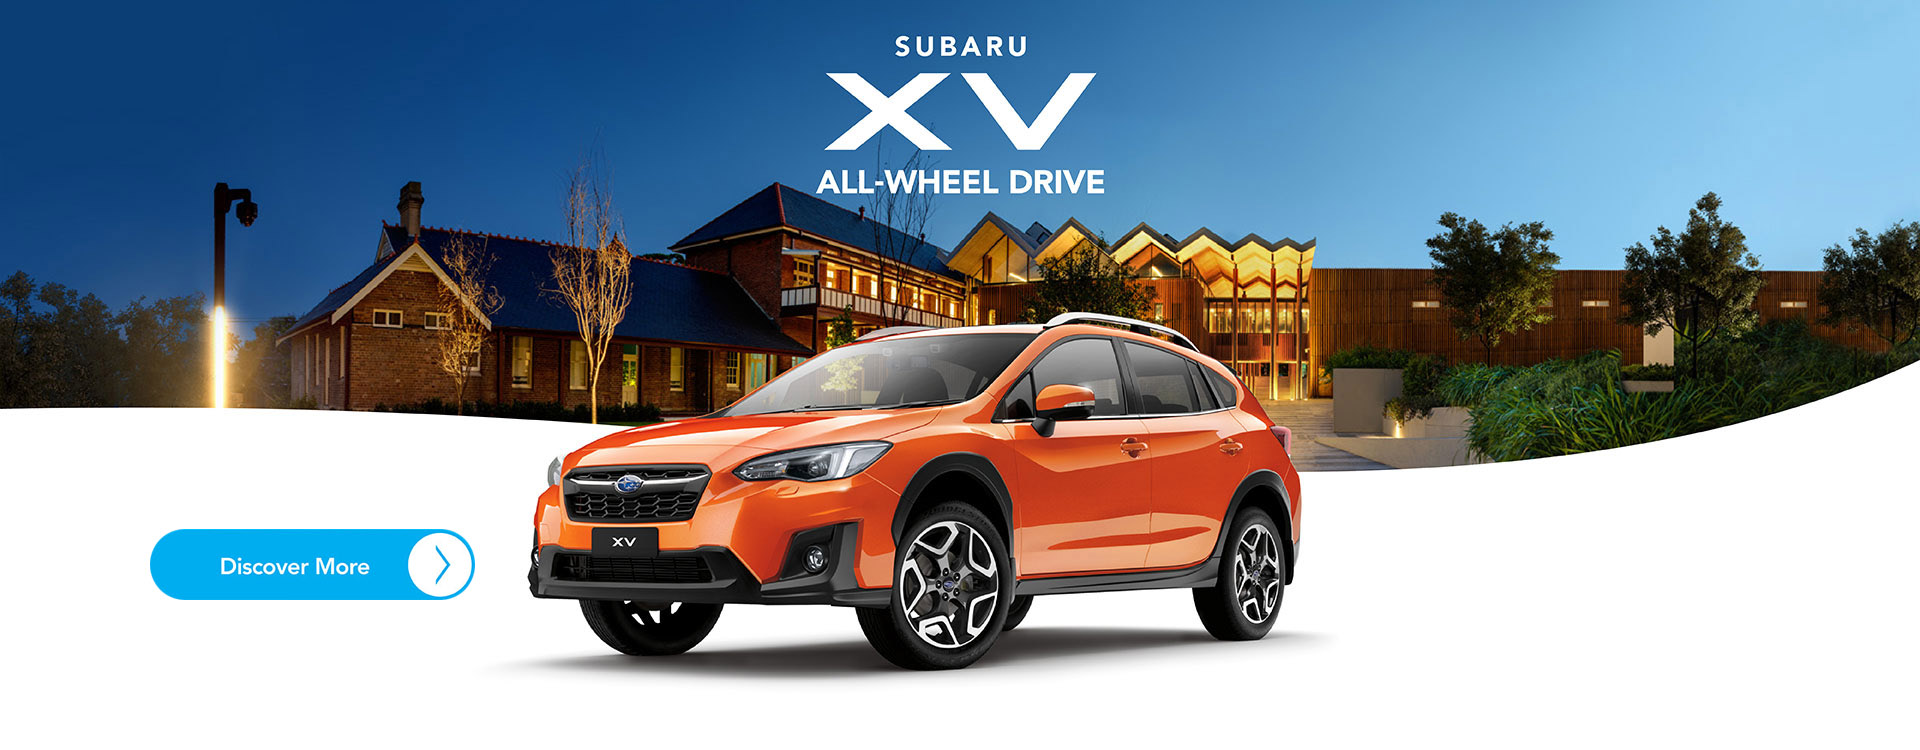 New Subaru XV, including Hybrid e-Boxer, now available at Subaru Tamworth. Test Drive Today!